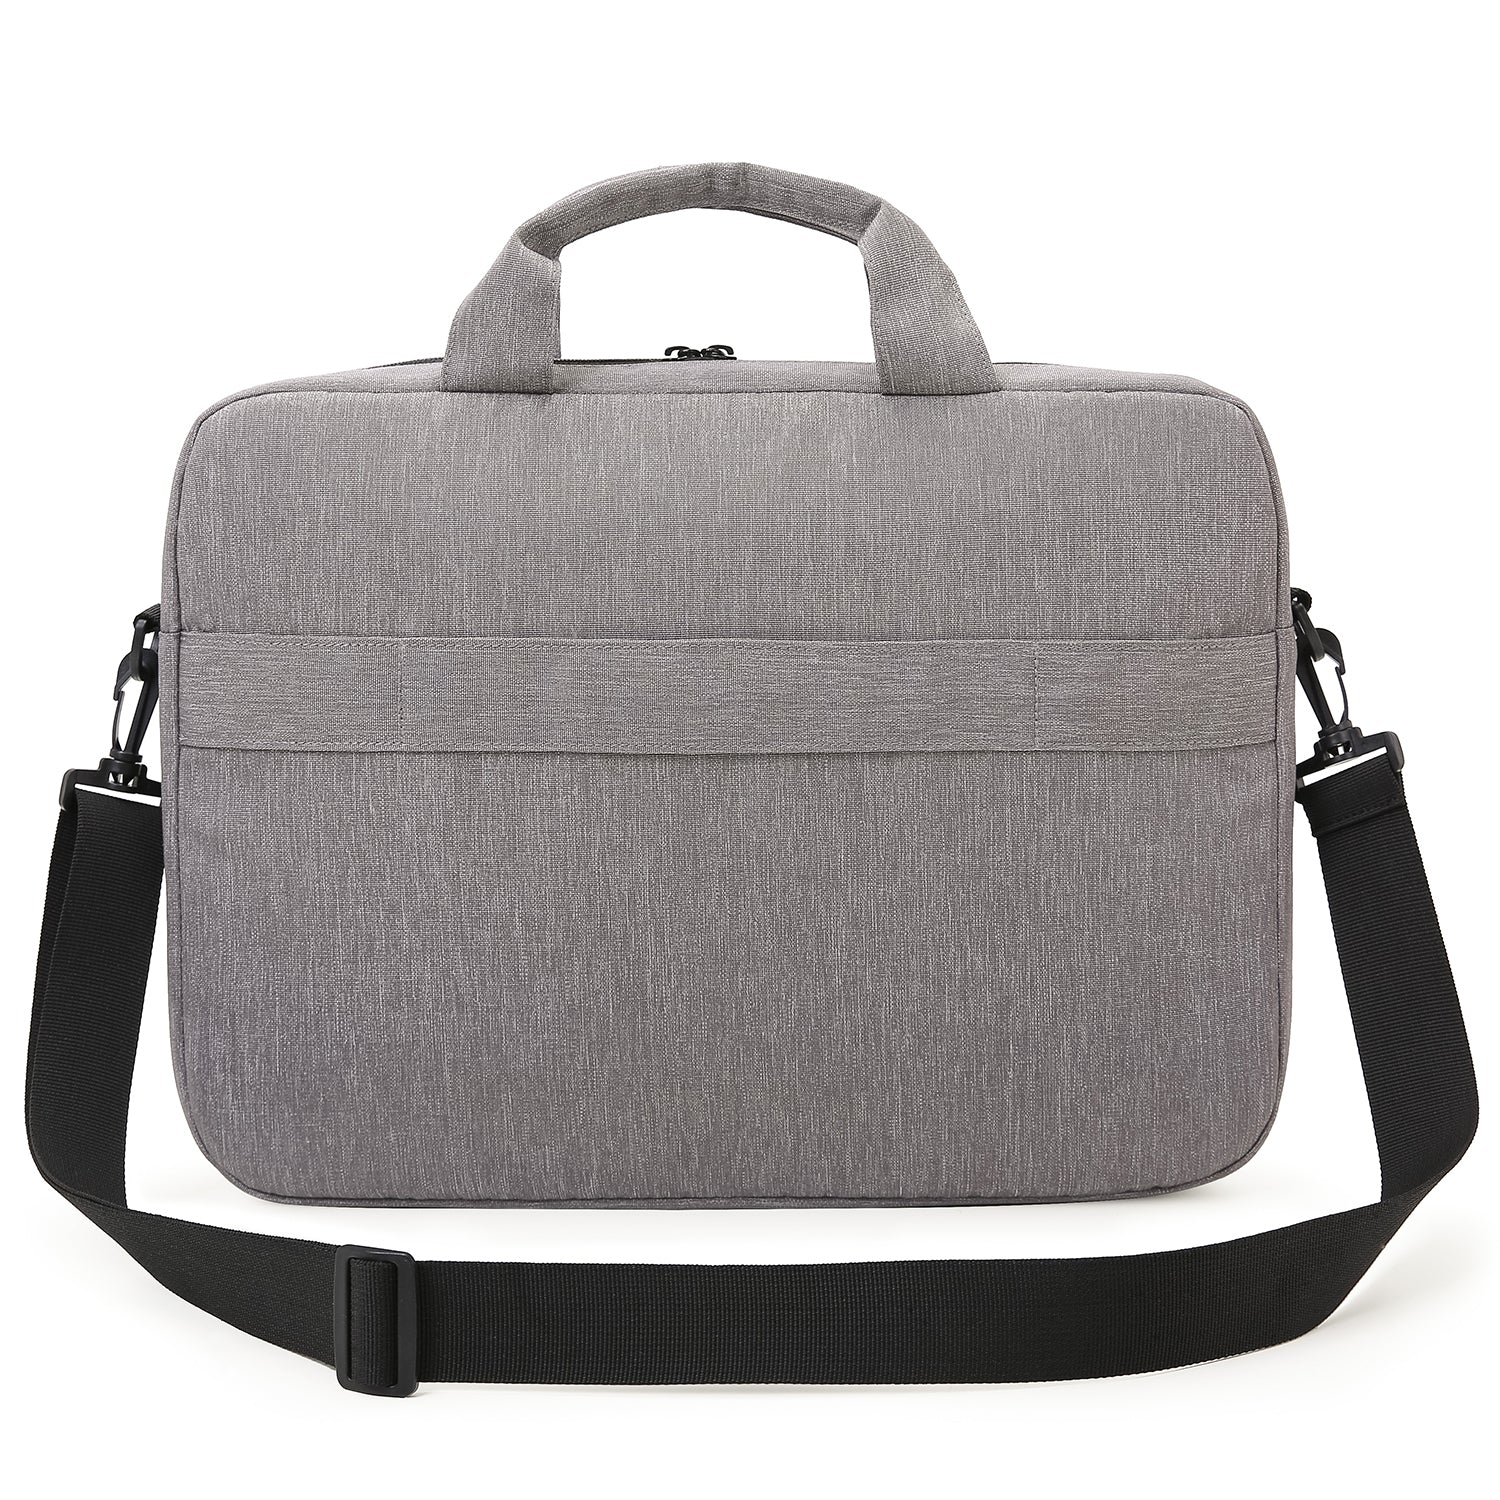 f5c7c38c87 Laptop Shoulder Bag 15.6 Inch Business Messenger Bag Work Briefcase Sleeve  Case Crossbody Bag for Ultrabook